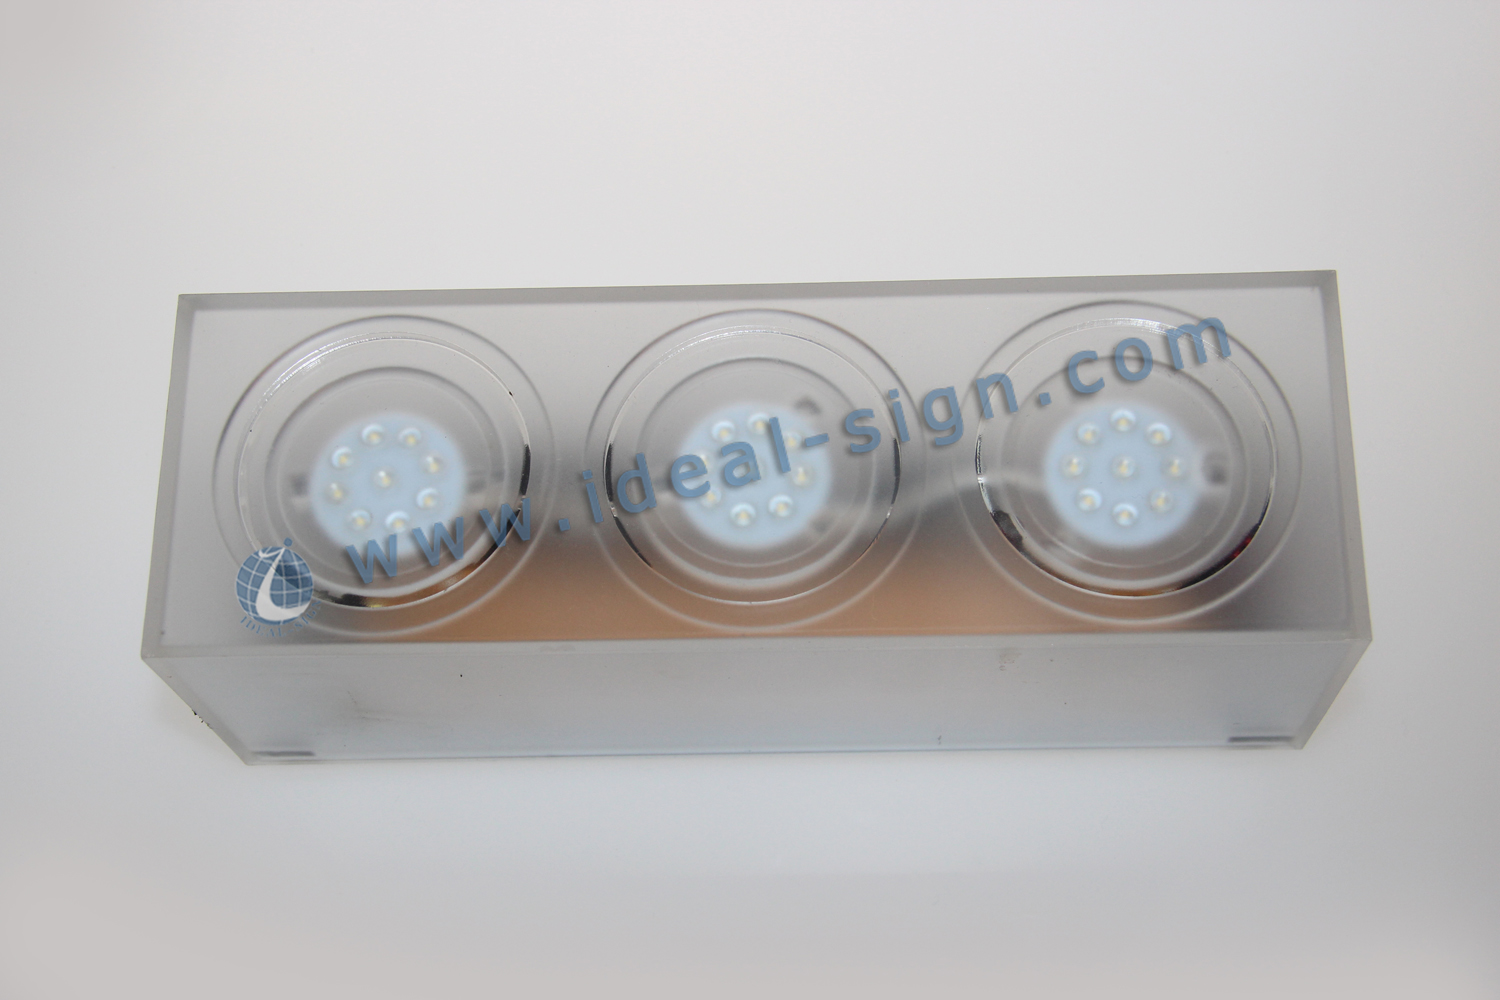 Acrylic LED Liquor Bottle Display available for club